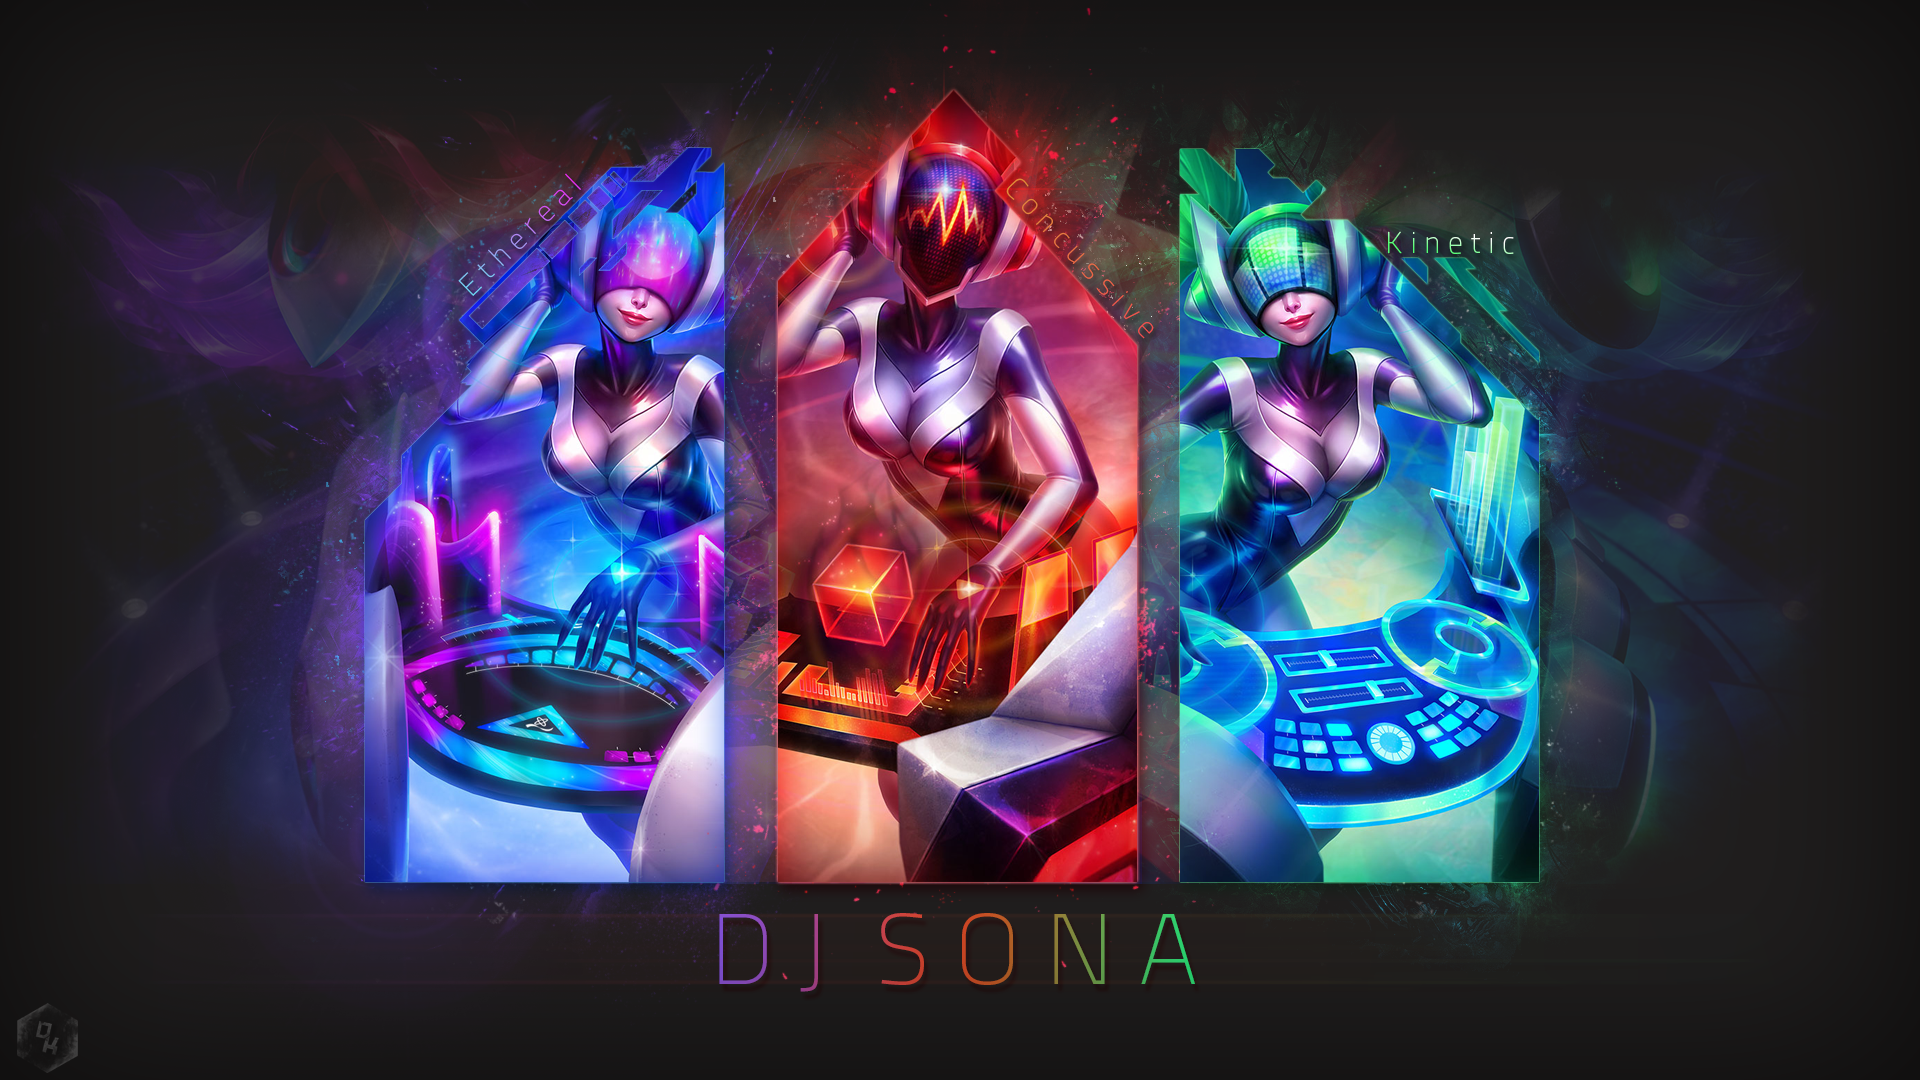 DJ Sona wallpaper